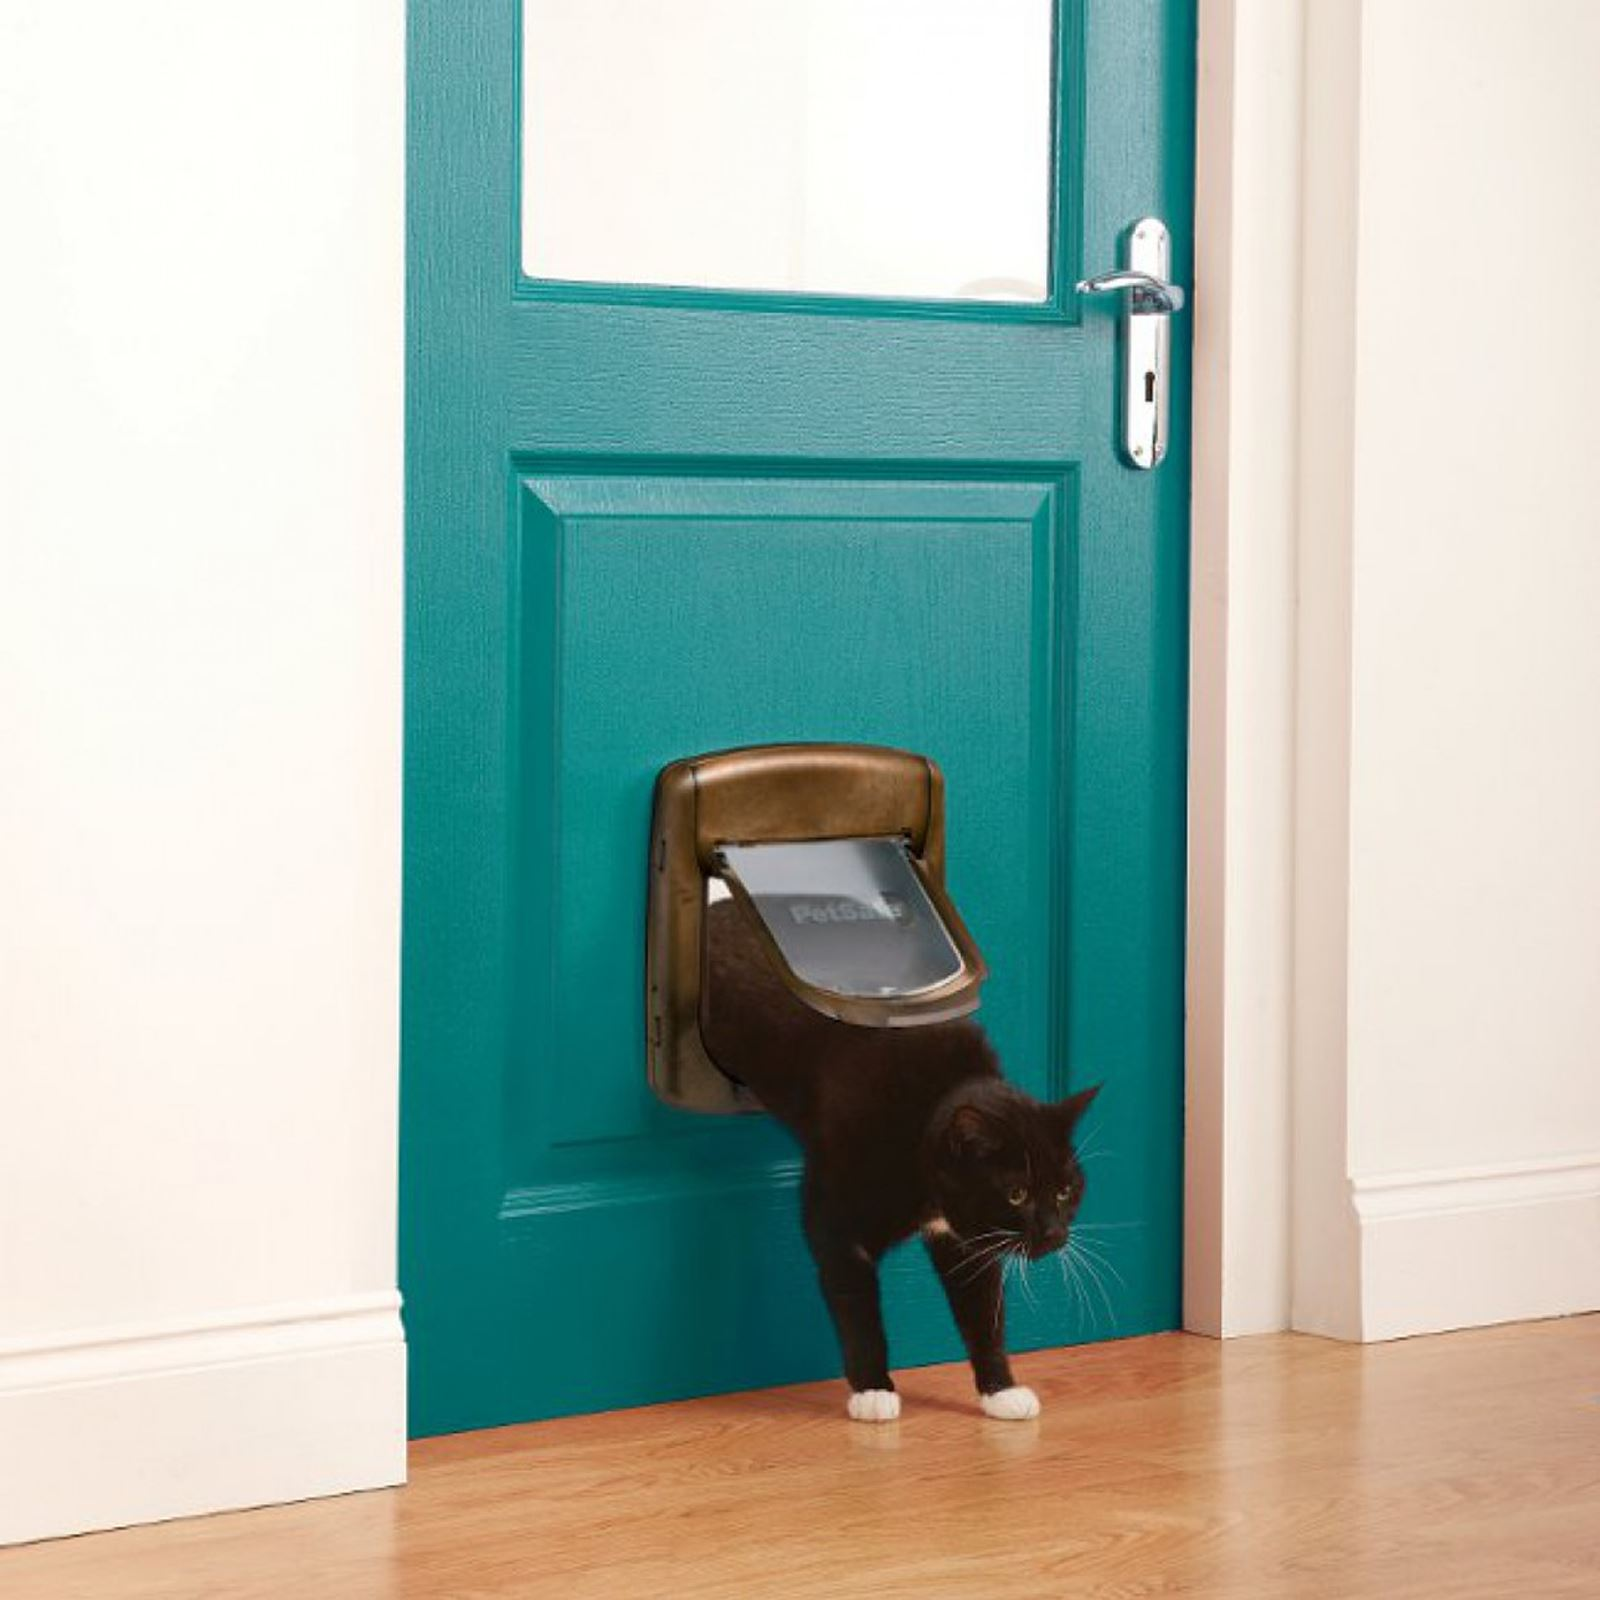 Cat-Flap-Petsafe-Staywell-Deluxe-4-Way-Locking-Cat-Door-Manual-Magnetic-catflap thumbnail 11